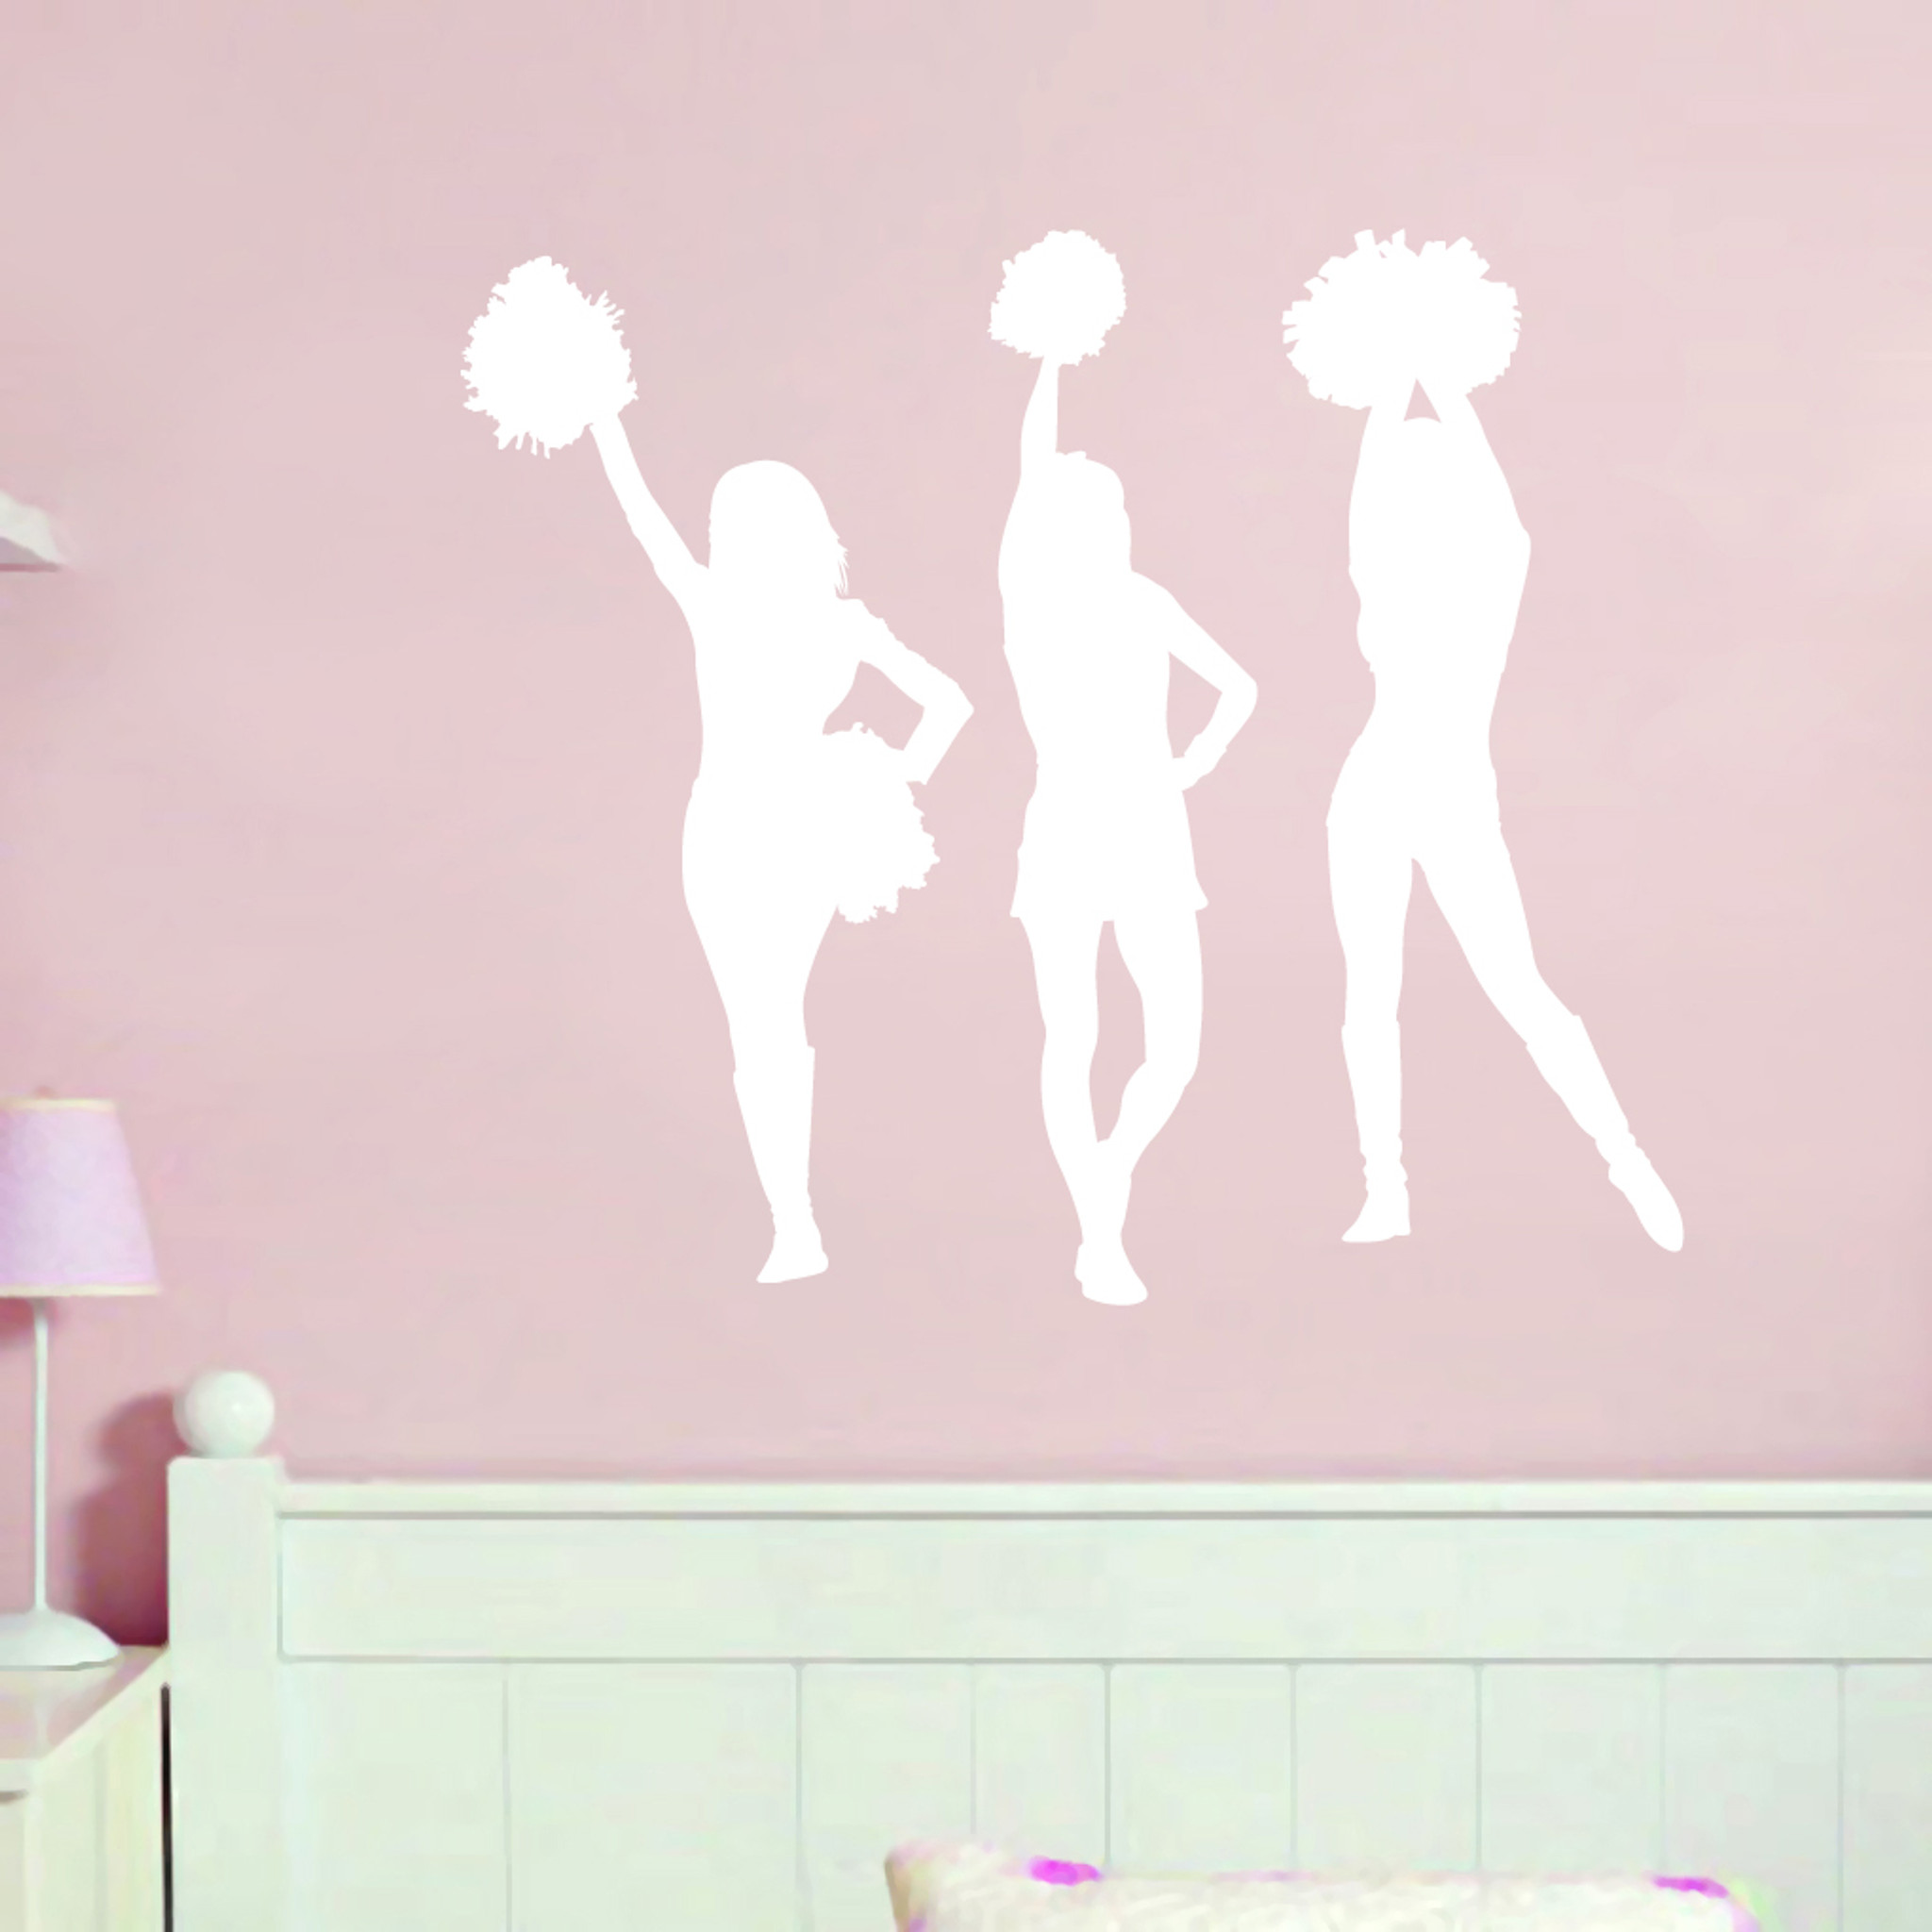 Cheerleaders wall decals wall art wall murals for Cheerleader wall mural